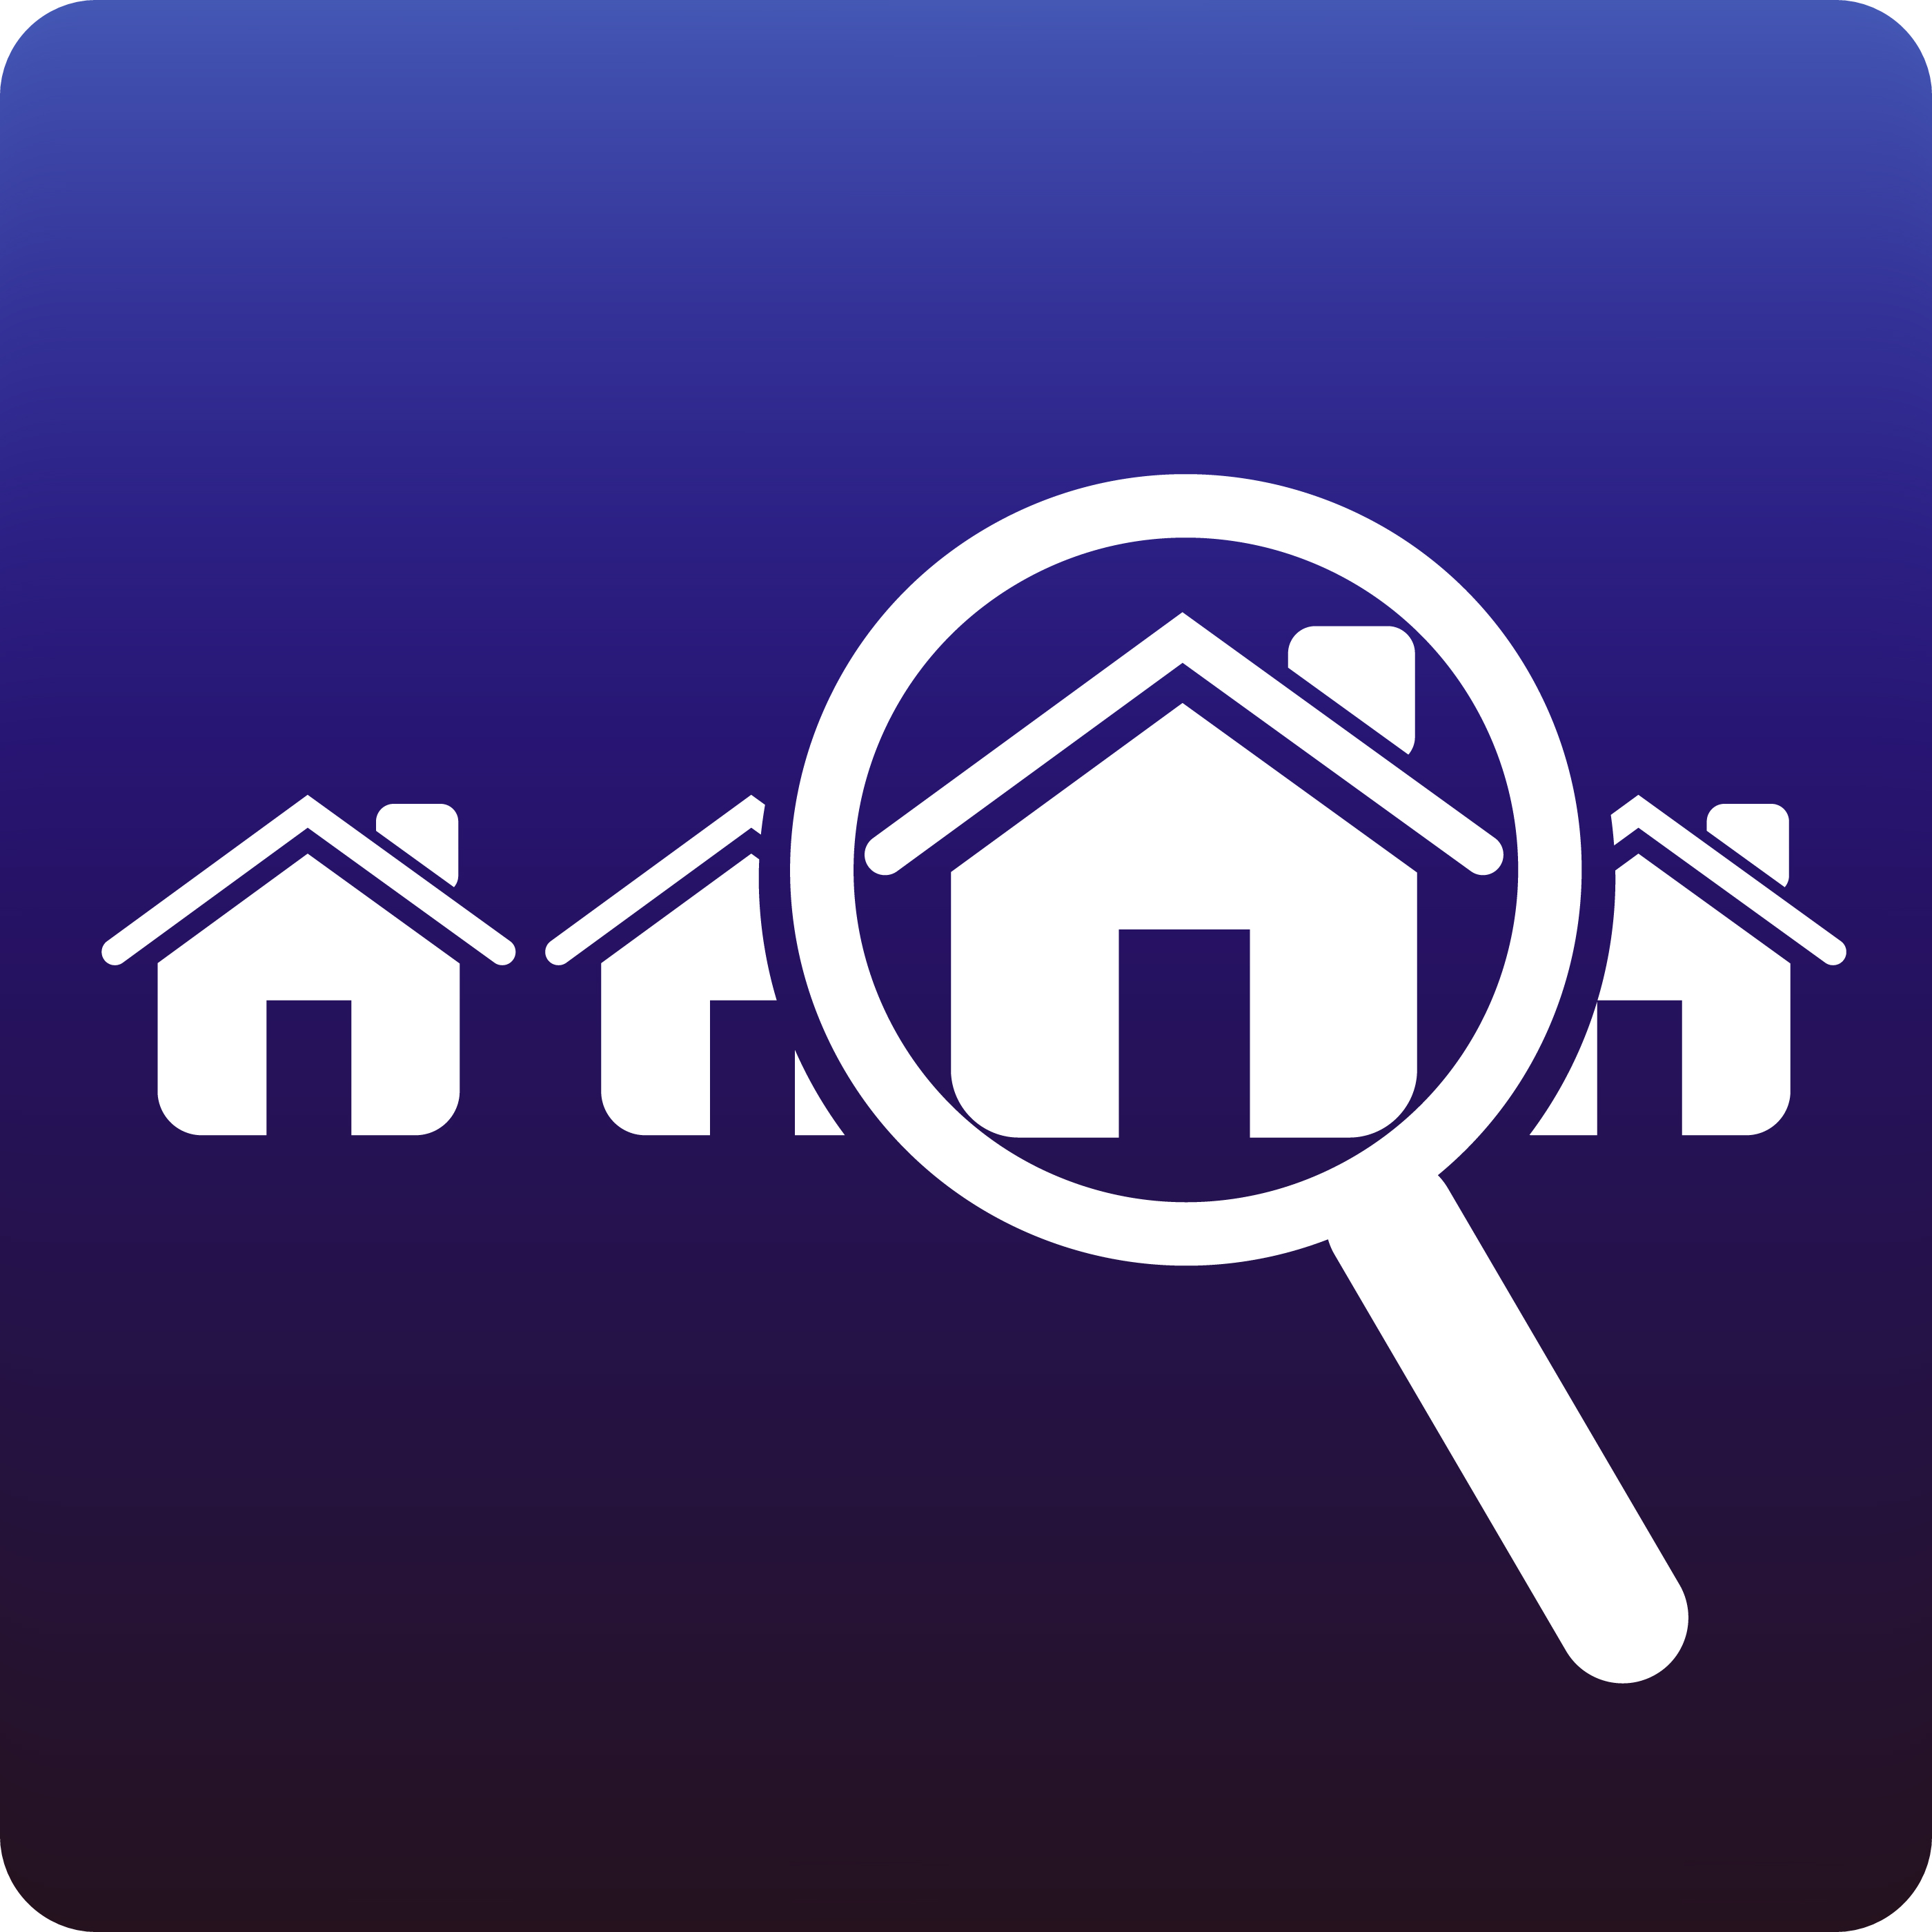 Find House: Lack Of Homesellers Changing The Real Estate Market